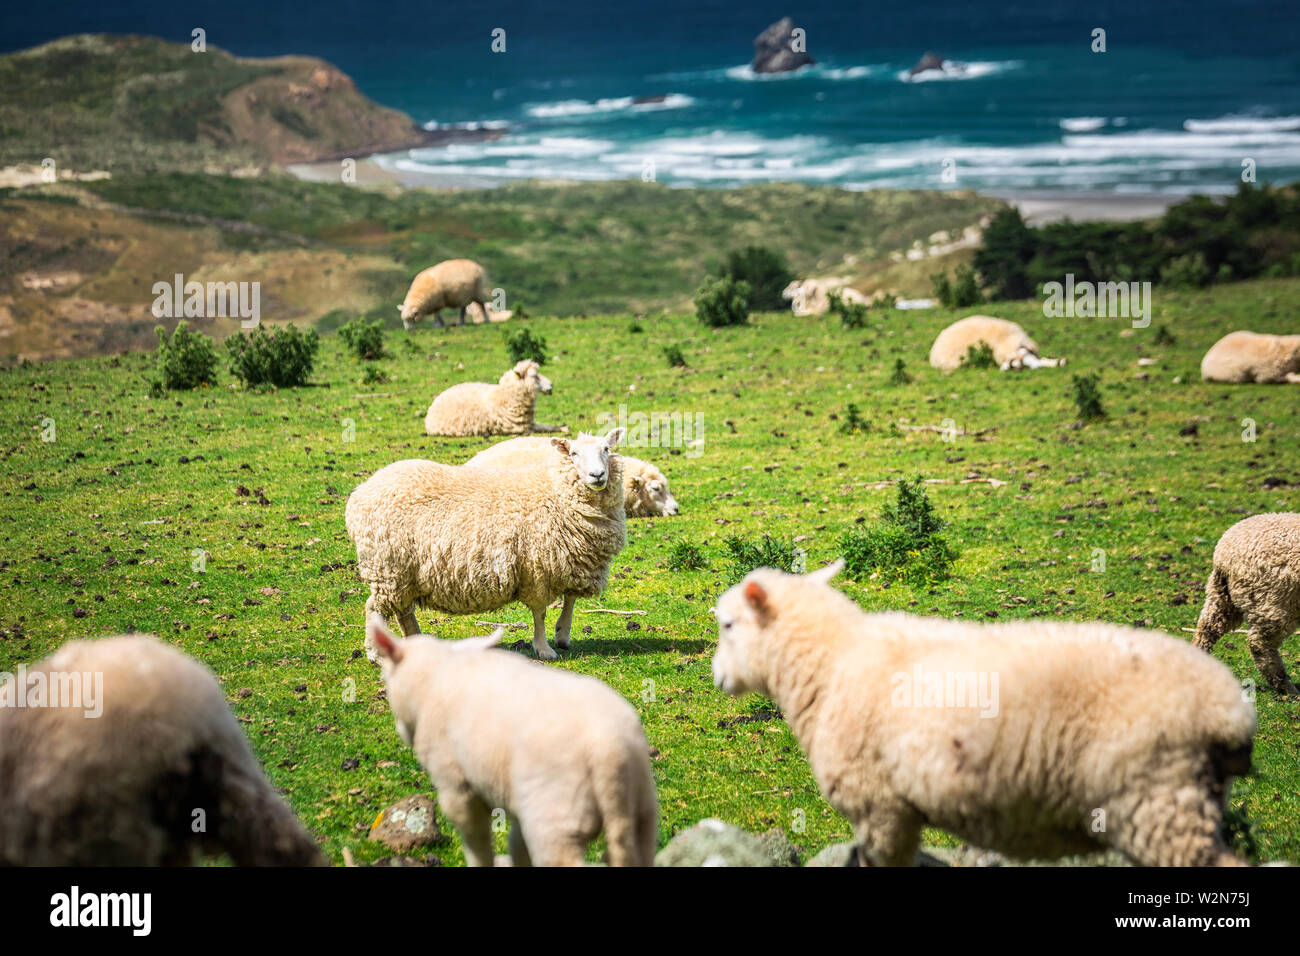 Sheep in a green meadow and stormy ocean in the background in the Southern Scenic Route, New Zealand. - Stock Image